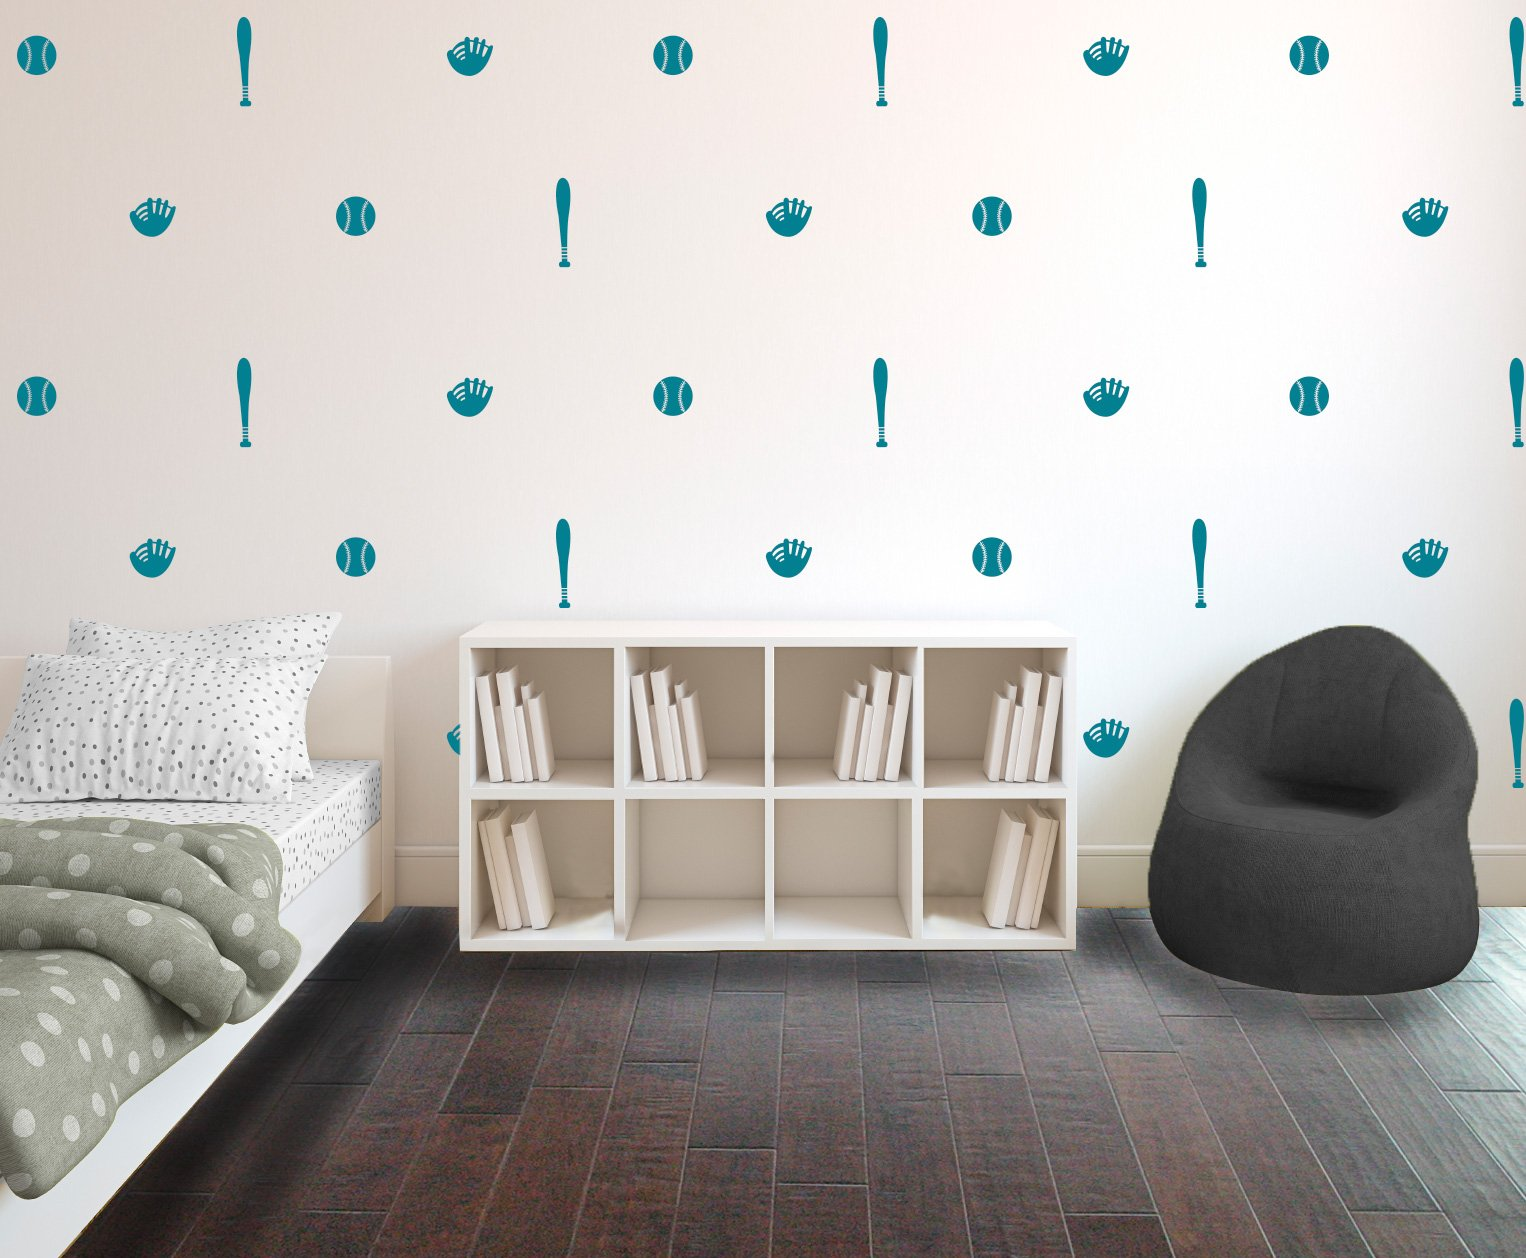 Teal Baseball Bat, Ball, & Glove Pattern - Set of 10 - Sports Vinyl Wall Art Decal for Homes, Offices, Kids Rooms, Nurseries, Schools, High Schools, Colleges, Universities